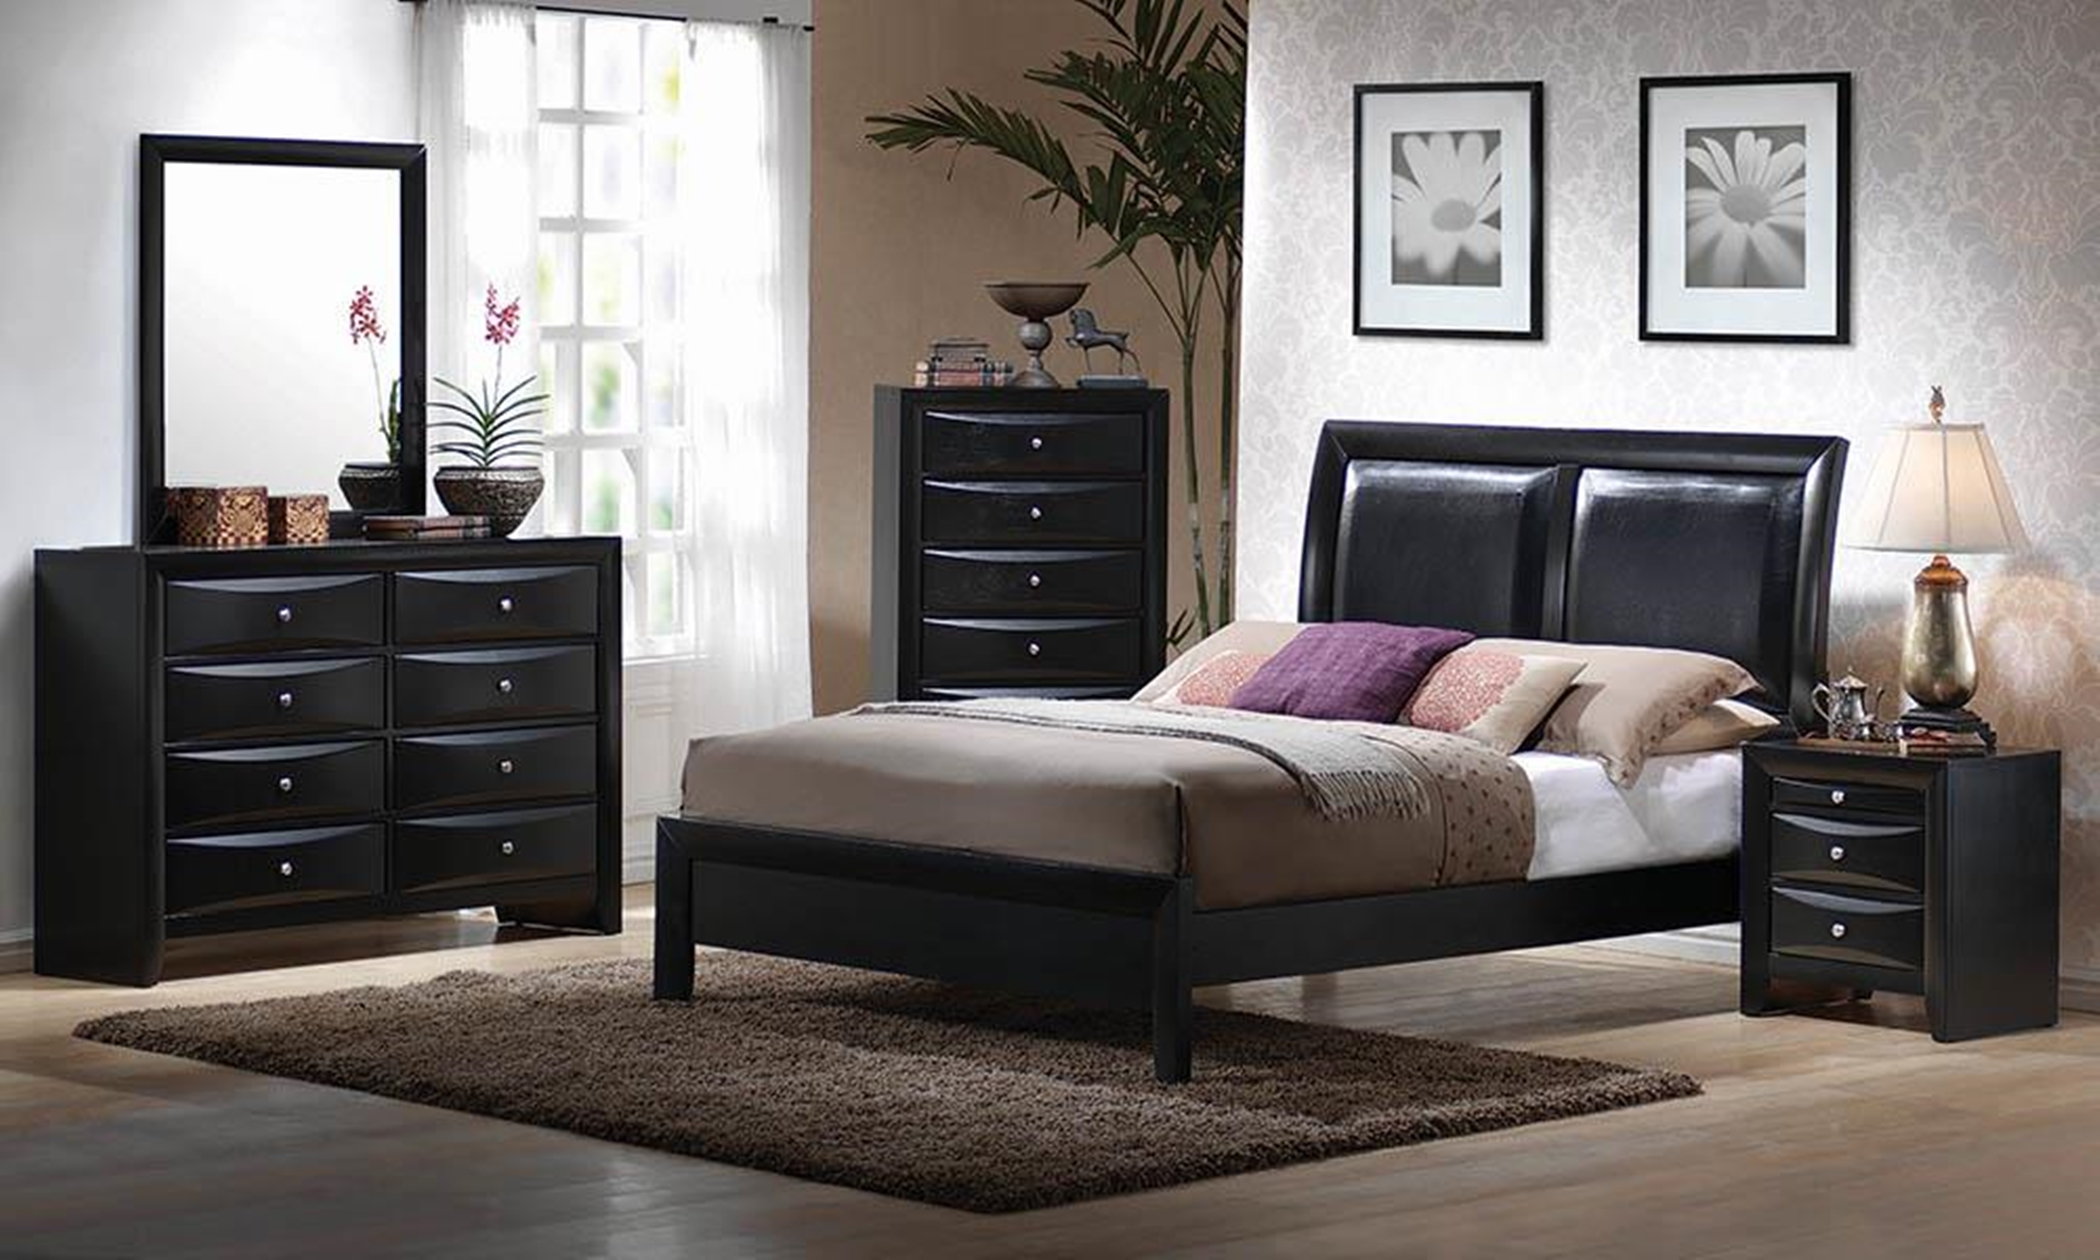 Briana Black transitional Cal. King Bed